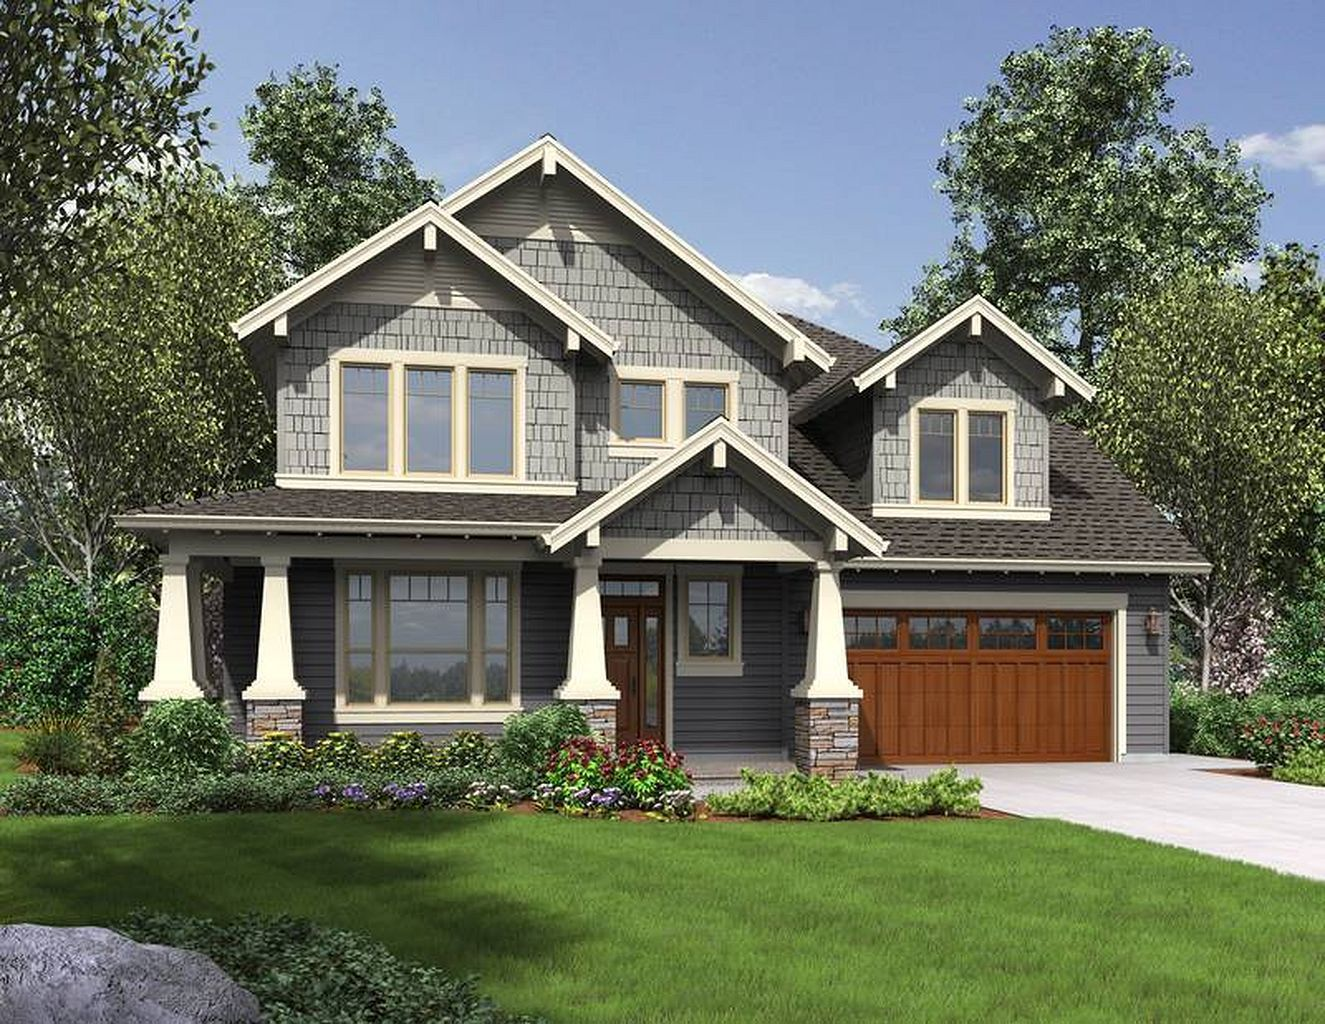 Craftsman Style Homes Exterior Ideas 67 | House Plans ...